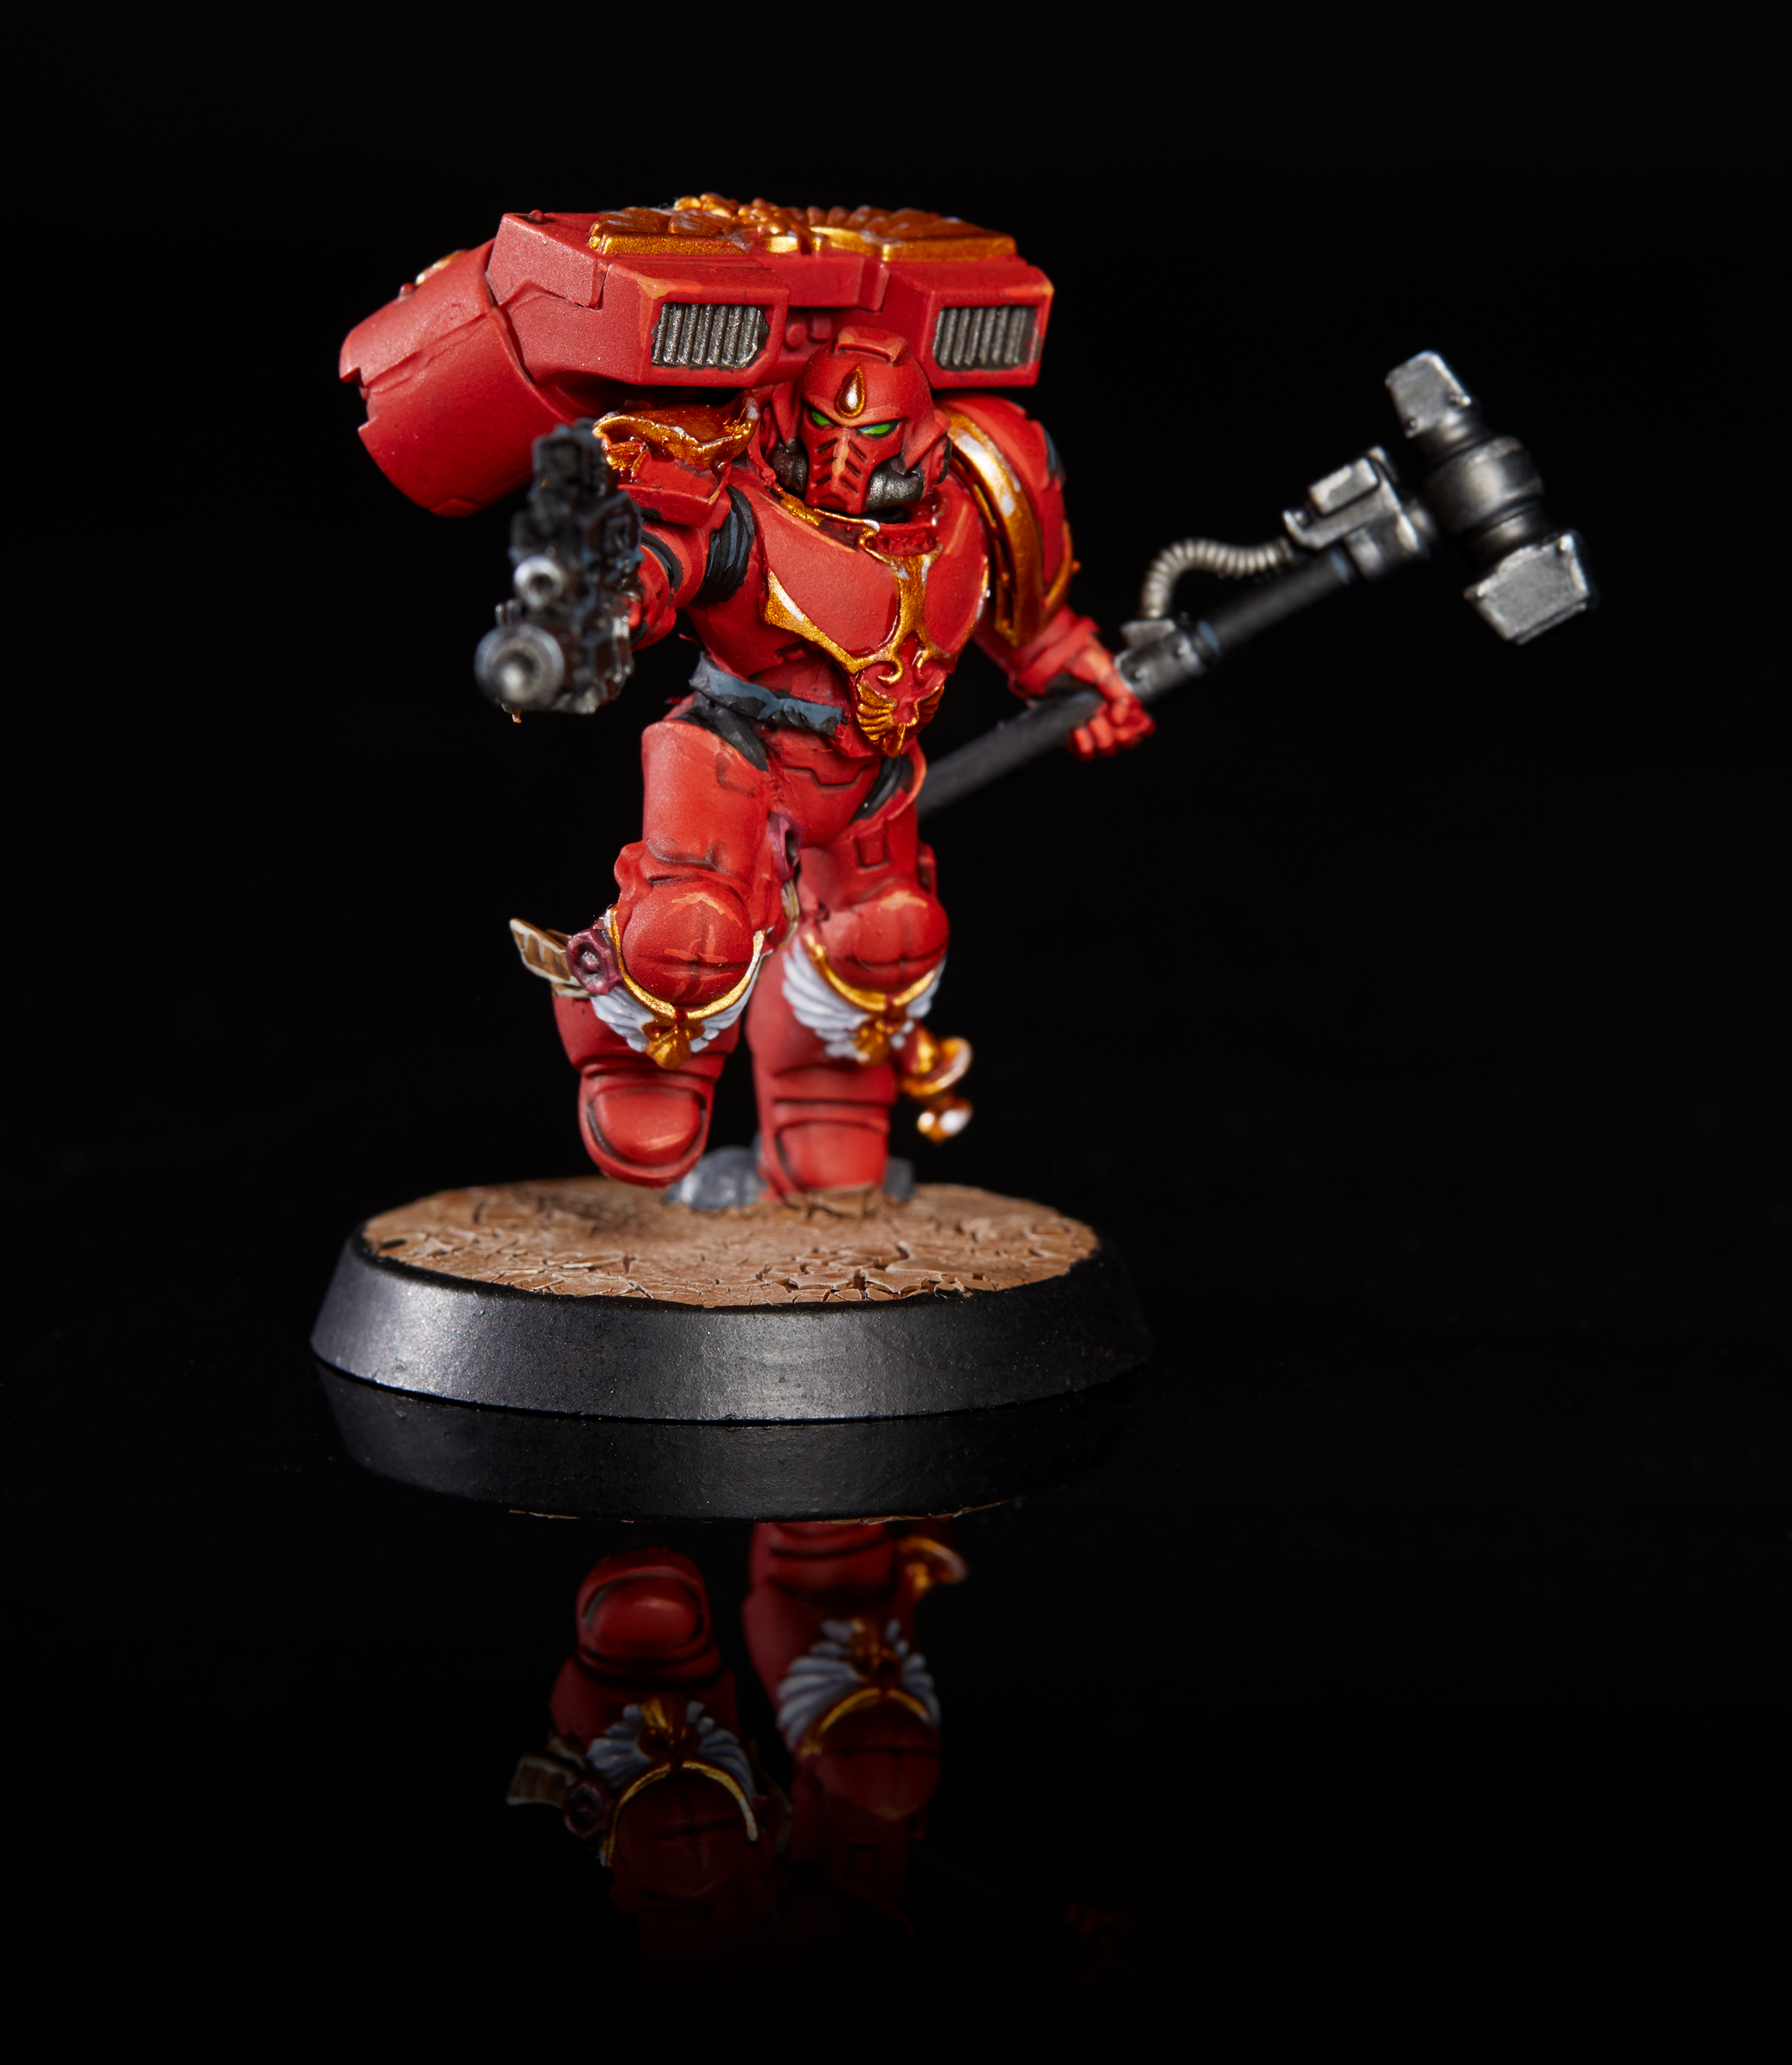 Booley and Pendant can finally shut the fuck up about Blood Angels not being playable